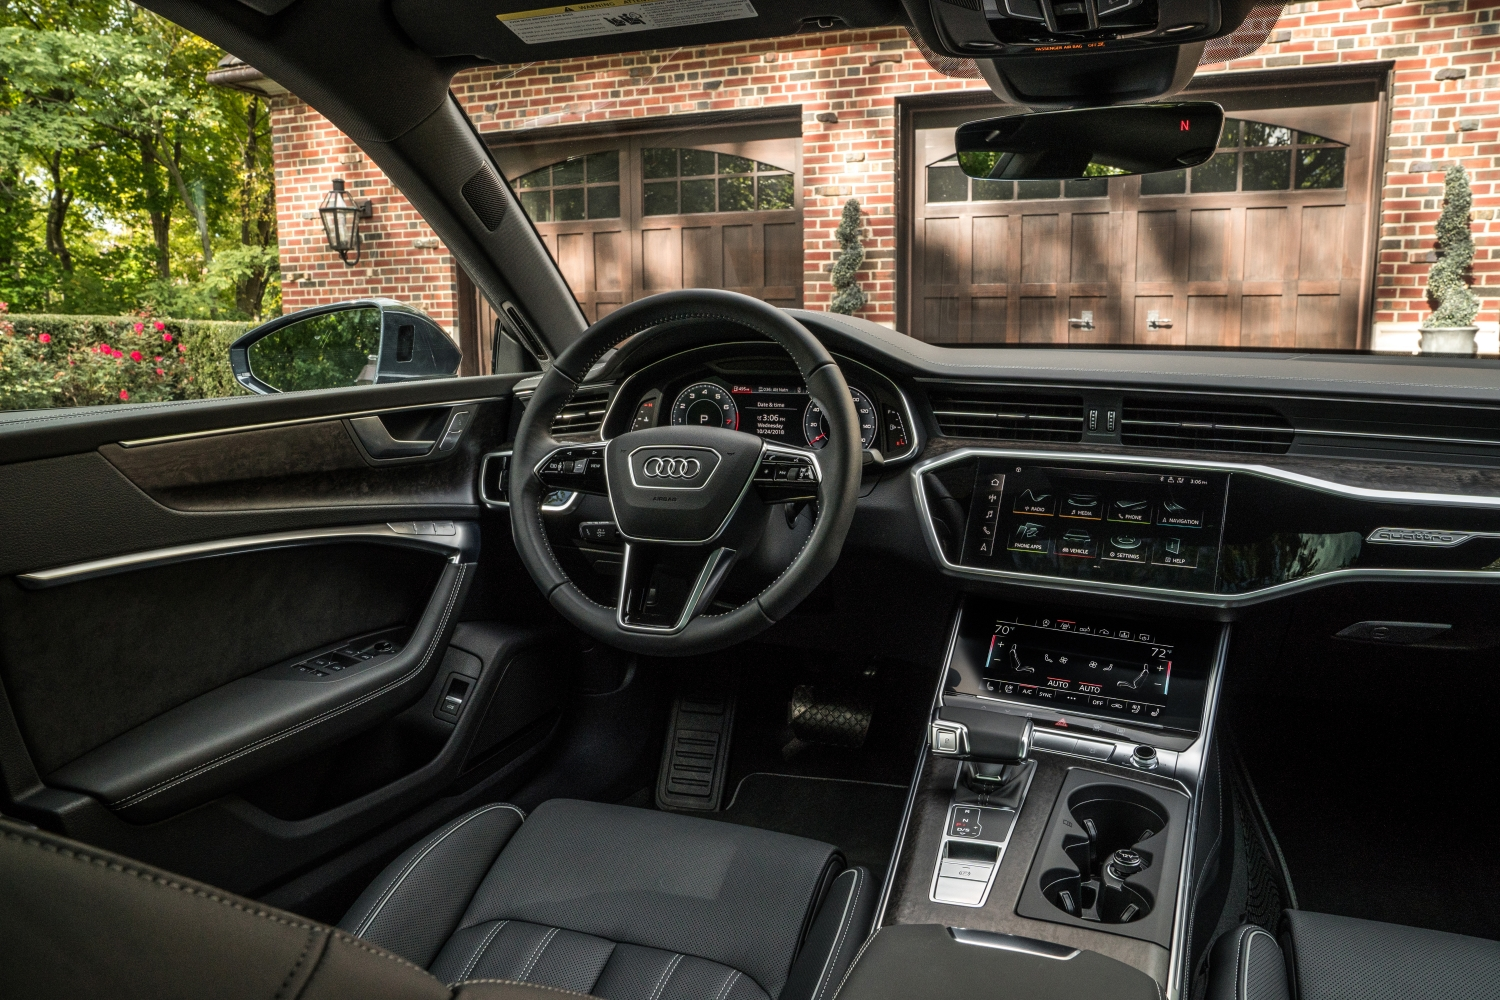 2019 Audi A6 Review Upping The Ante On Tech And Style